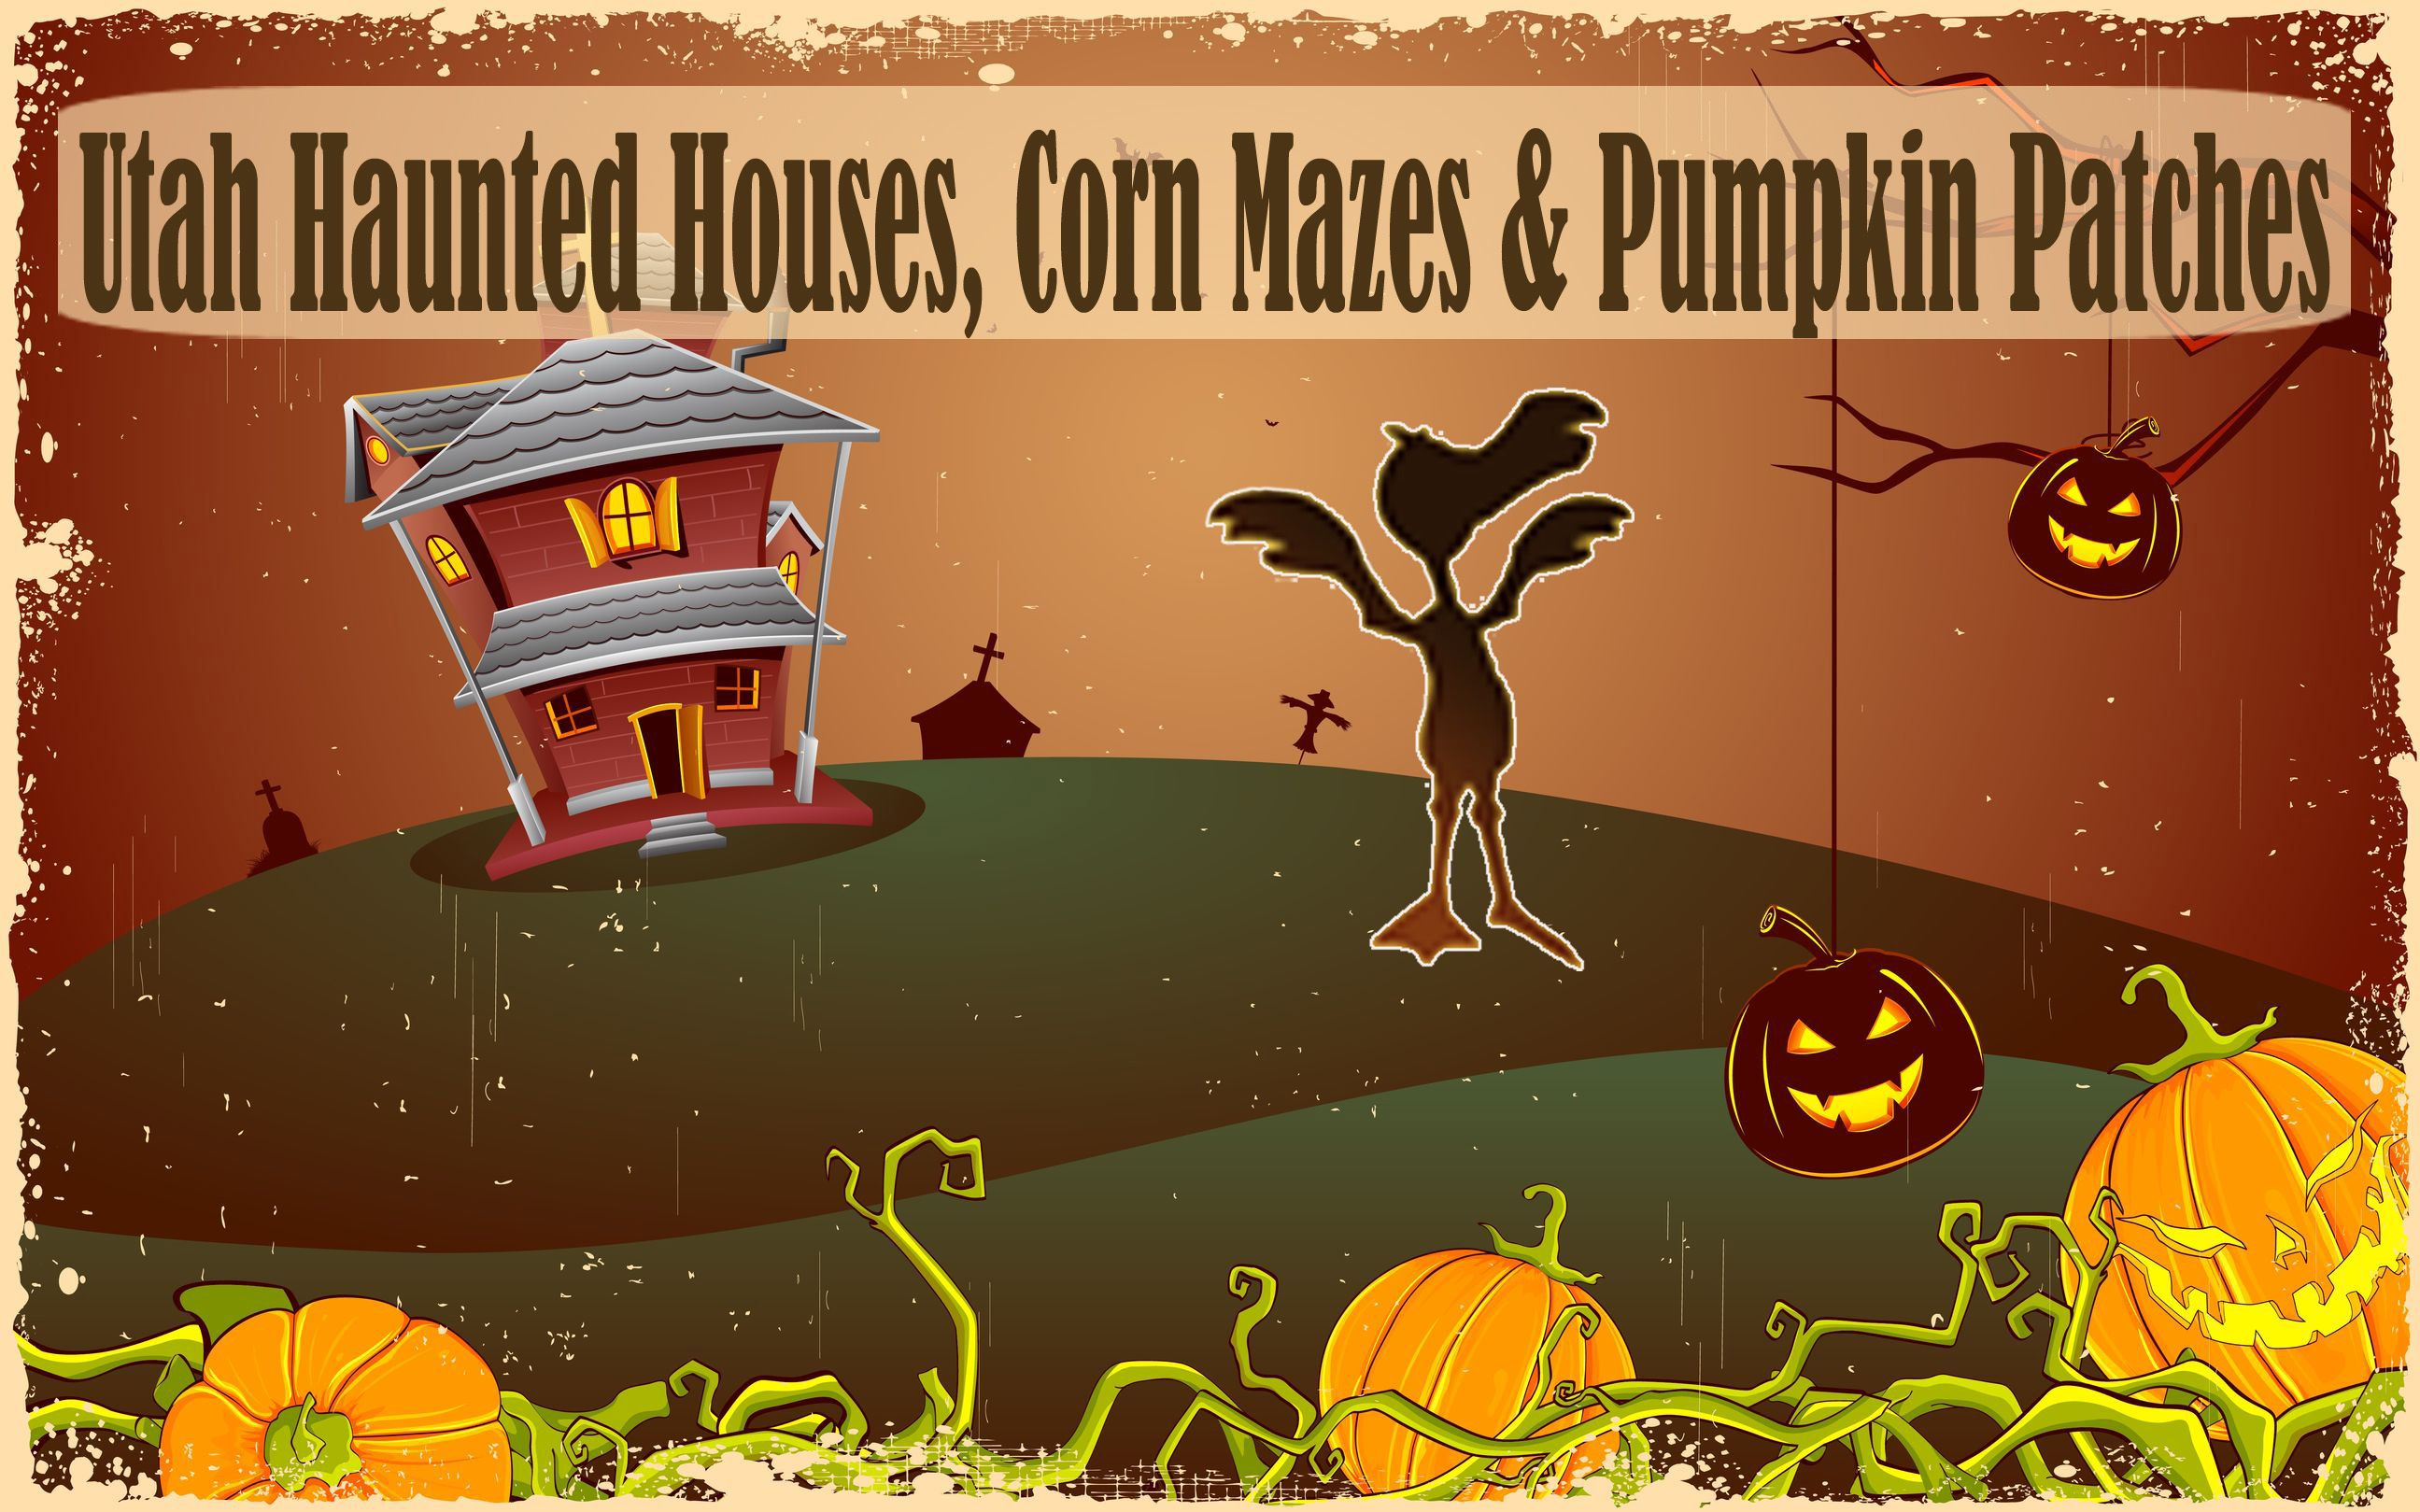 Utah Haunted Houses, Corn Mazes and Pumpkin Patches.